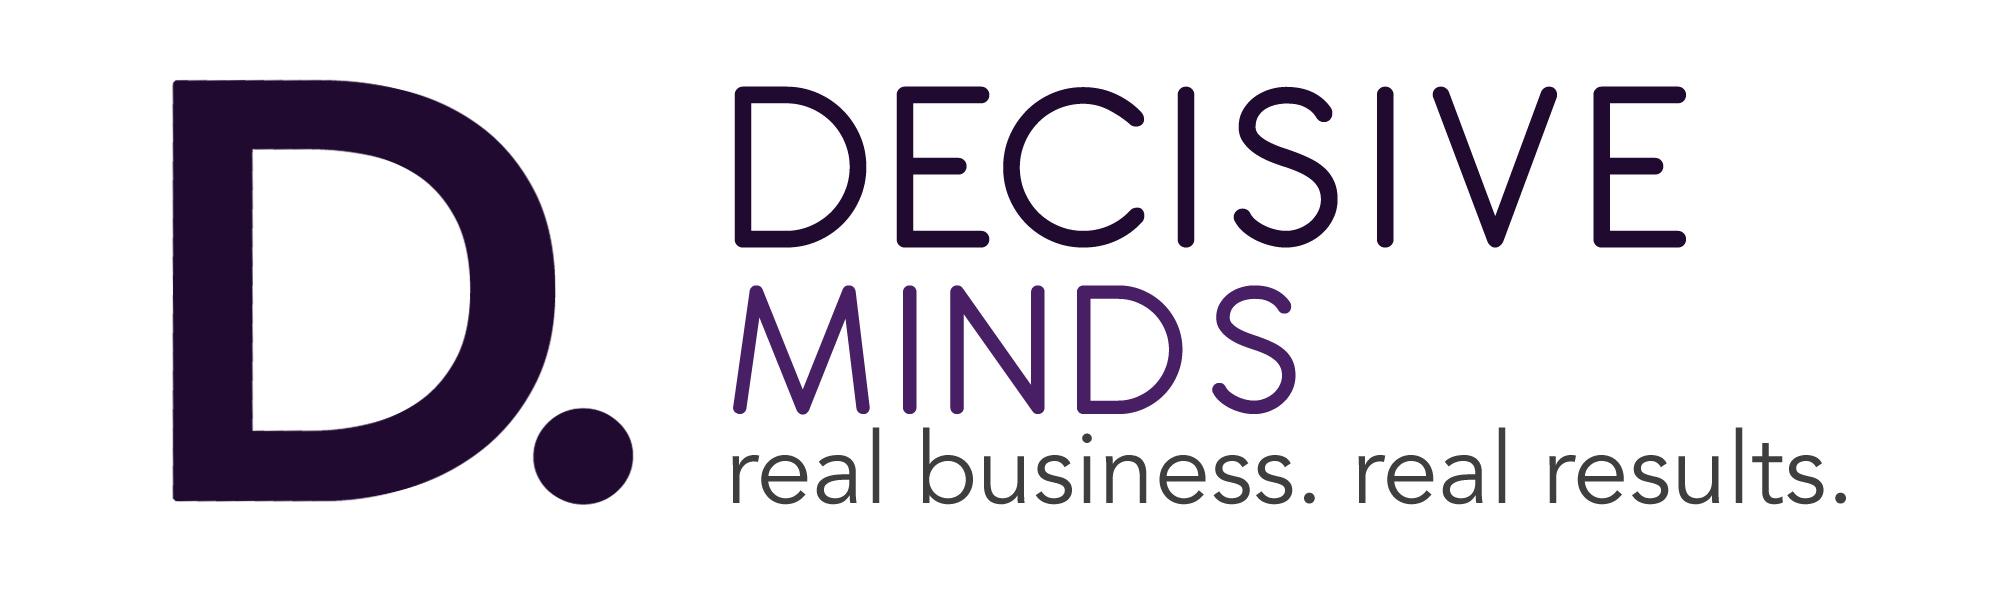 Decisive Minds